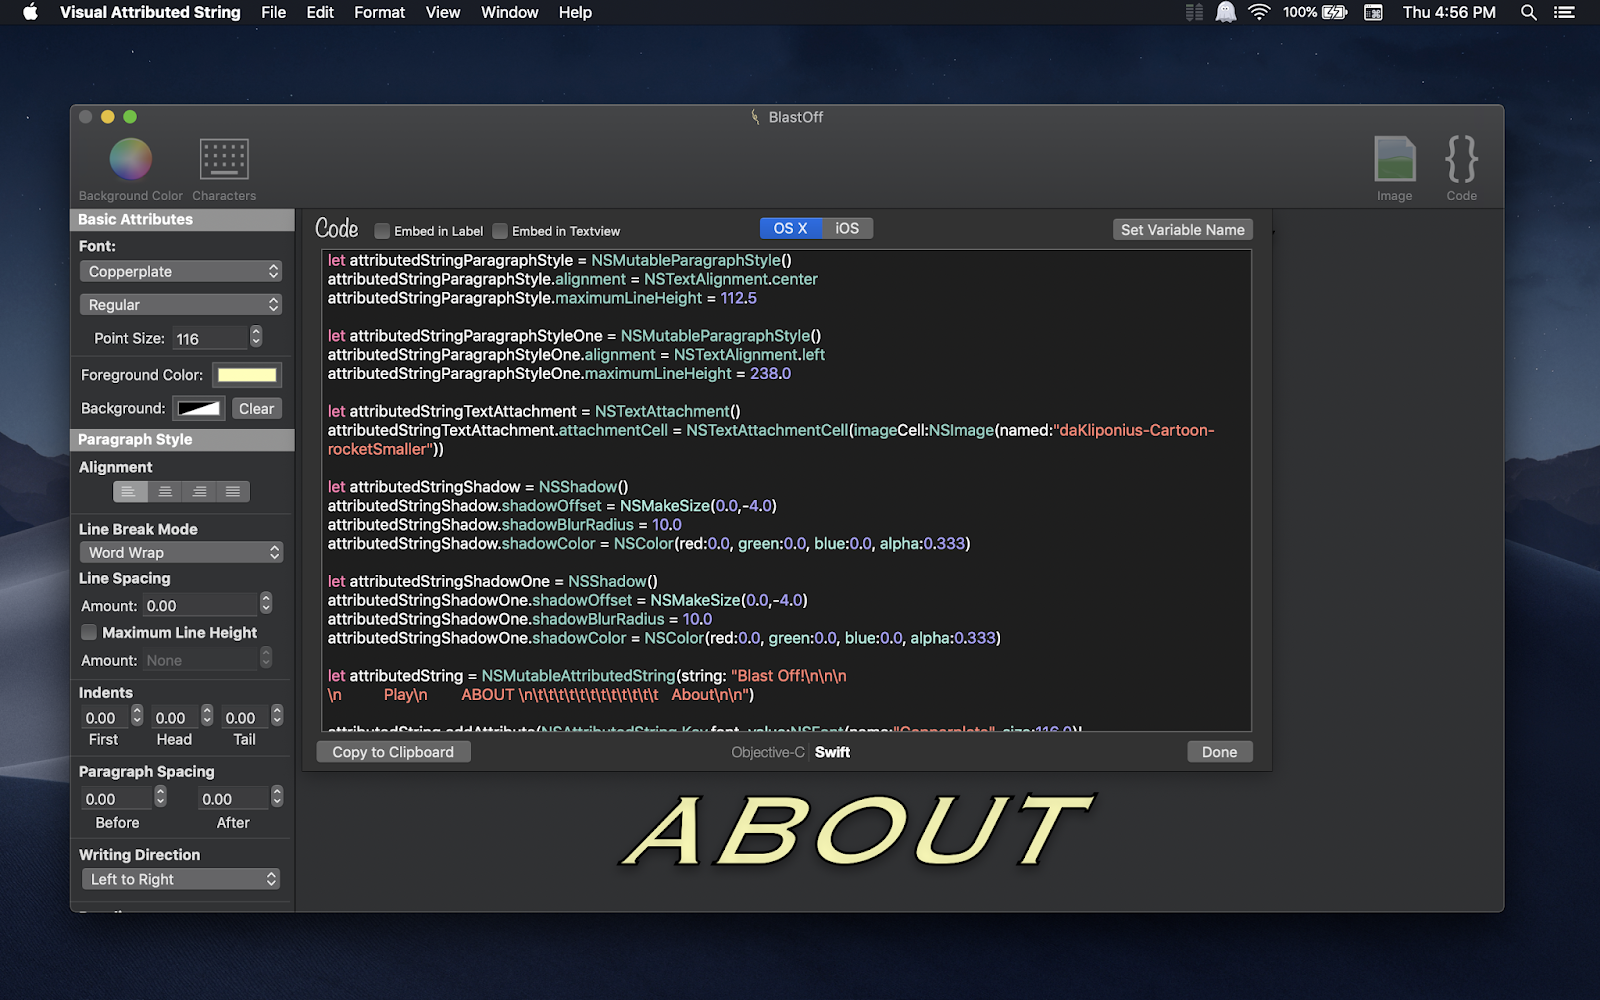 Visual Attributed String Mac app screenshot in Dark Mode on macOS Mojave with generated code window displayed.